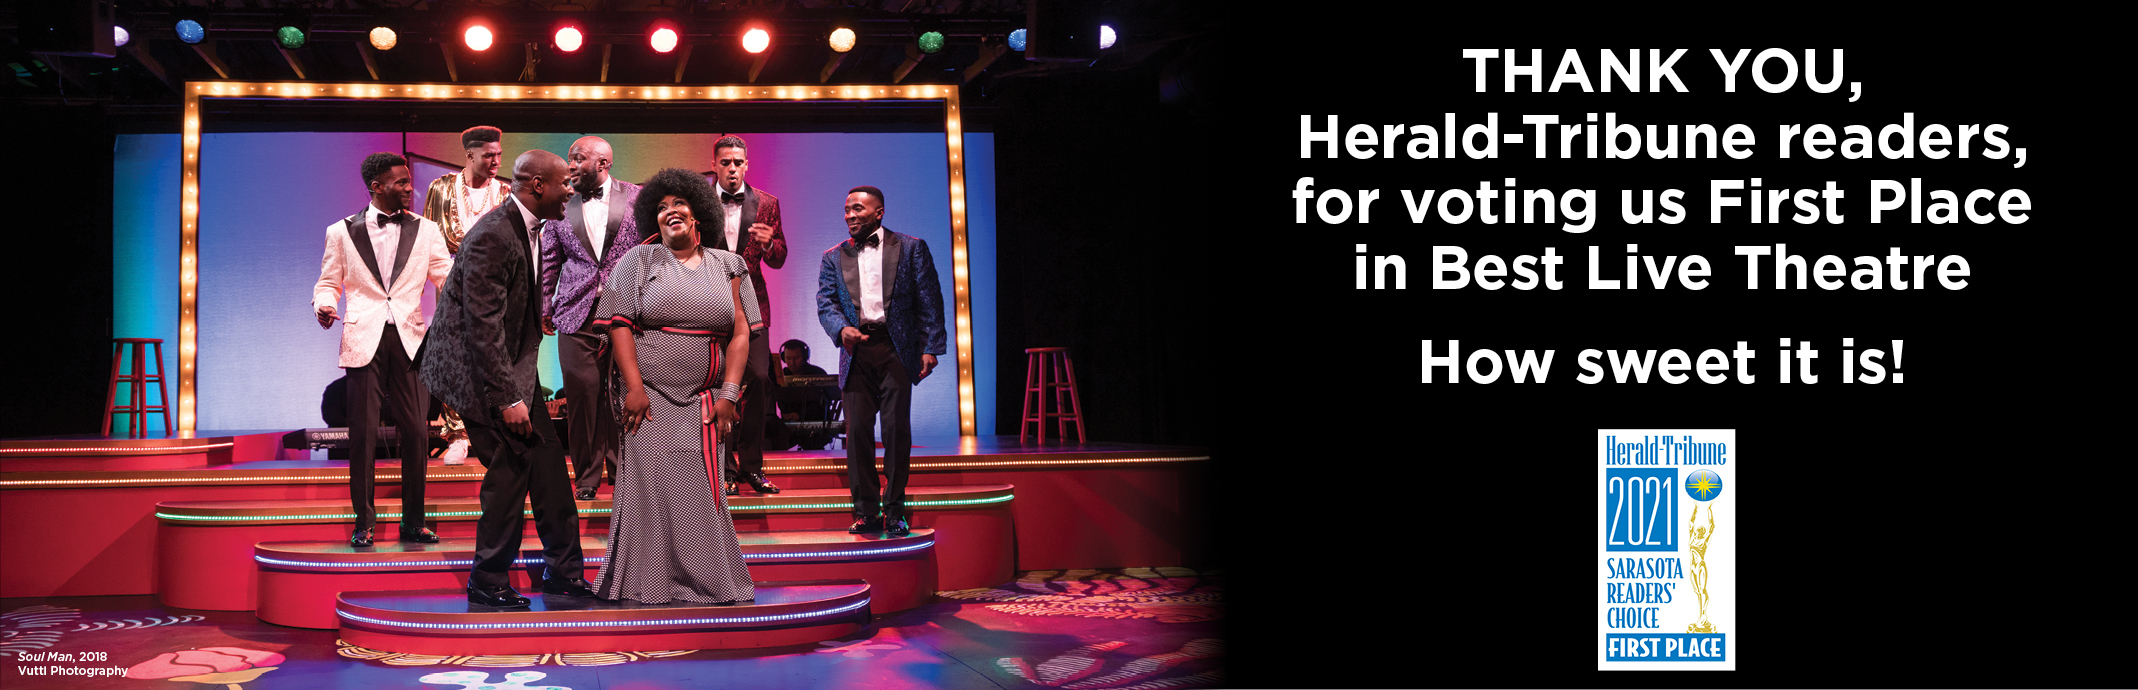 Thank you Herald-Tribune readers for voting us First Place in Best Live Theater! How sweet it is!